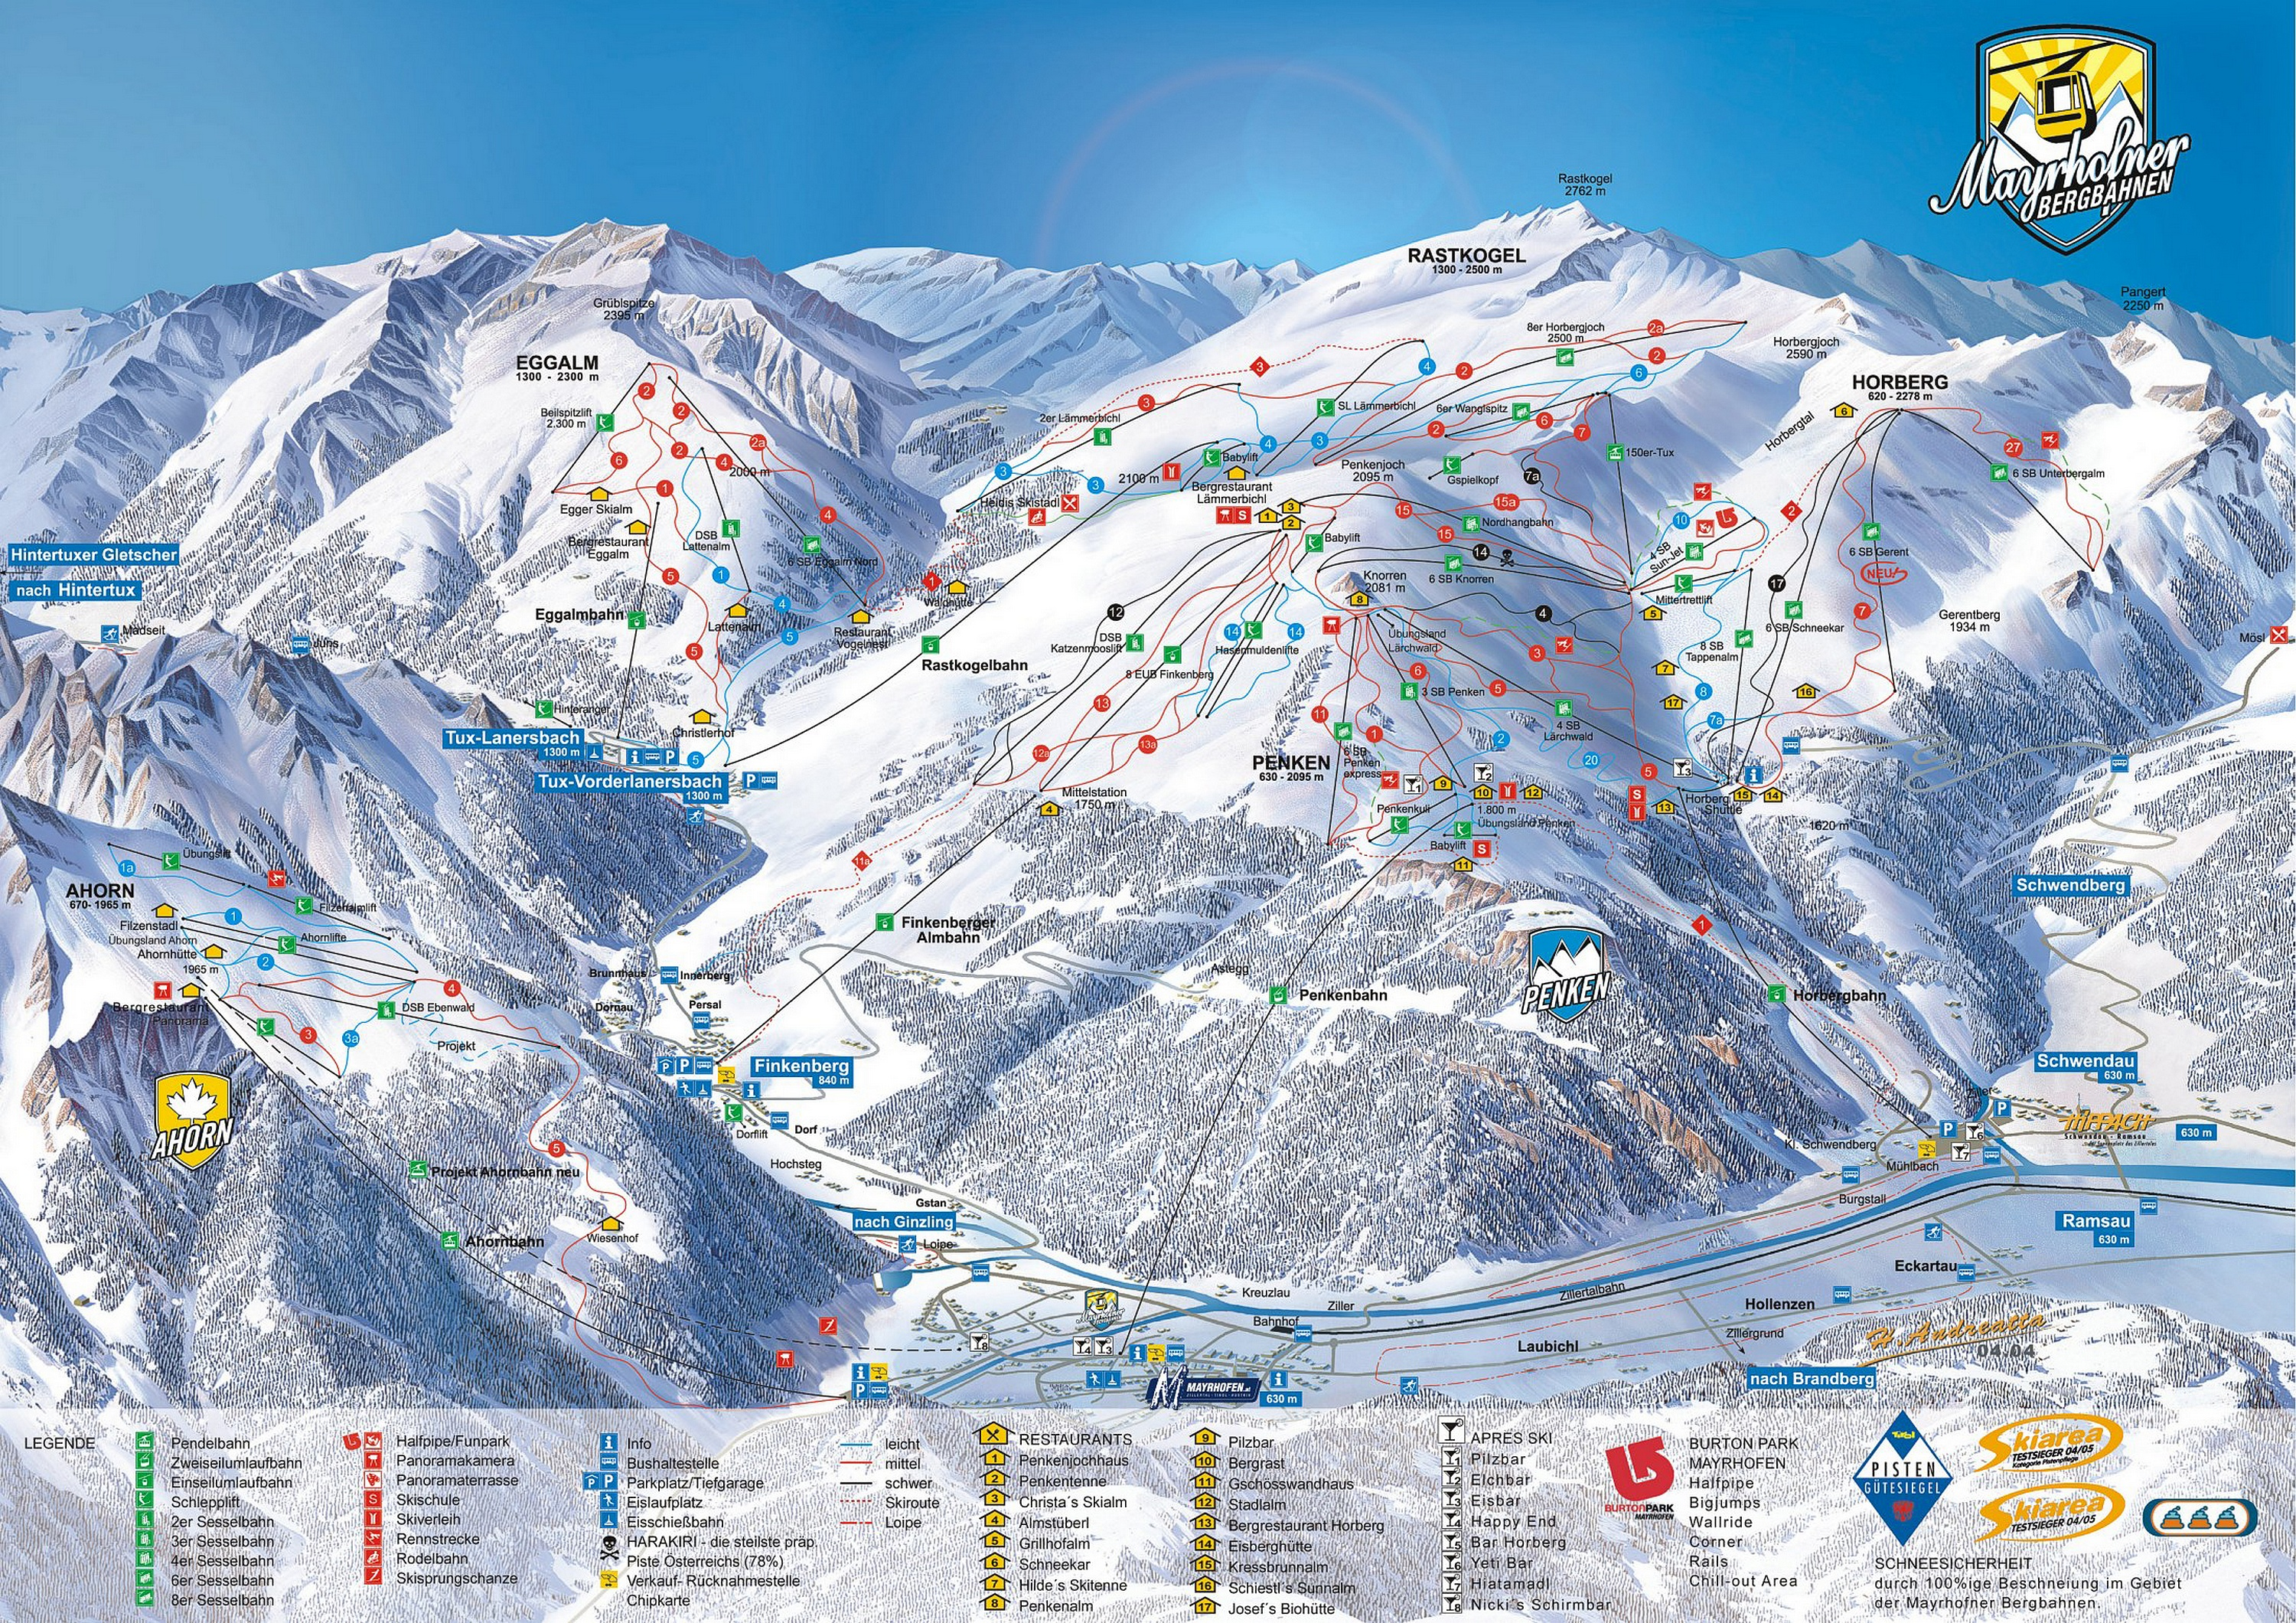 Skiing New England Map.How To Read A Piste Map Guide Ski Club Of Great Britain